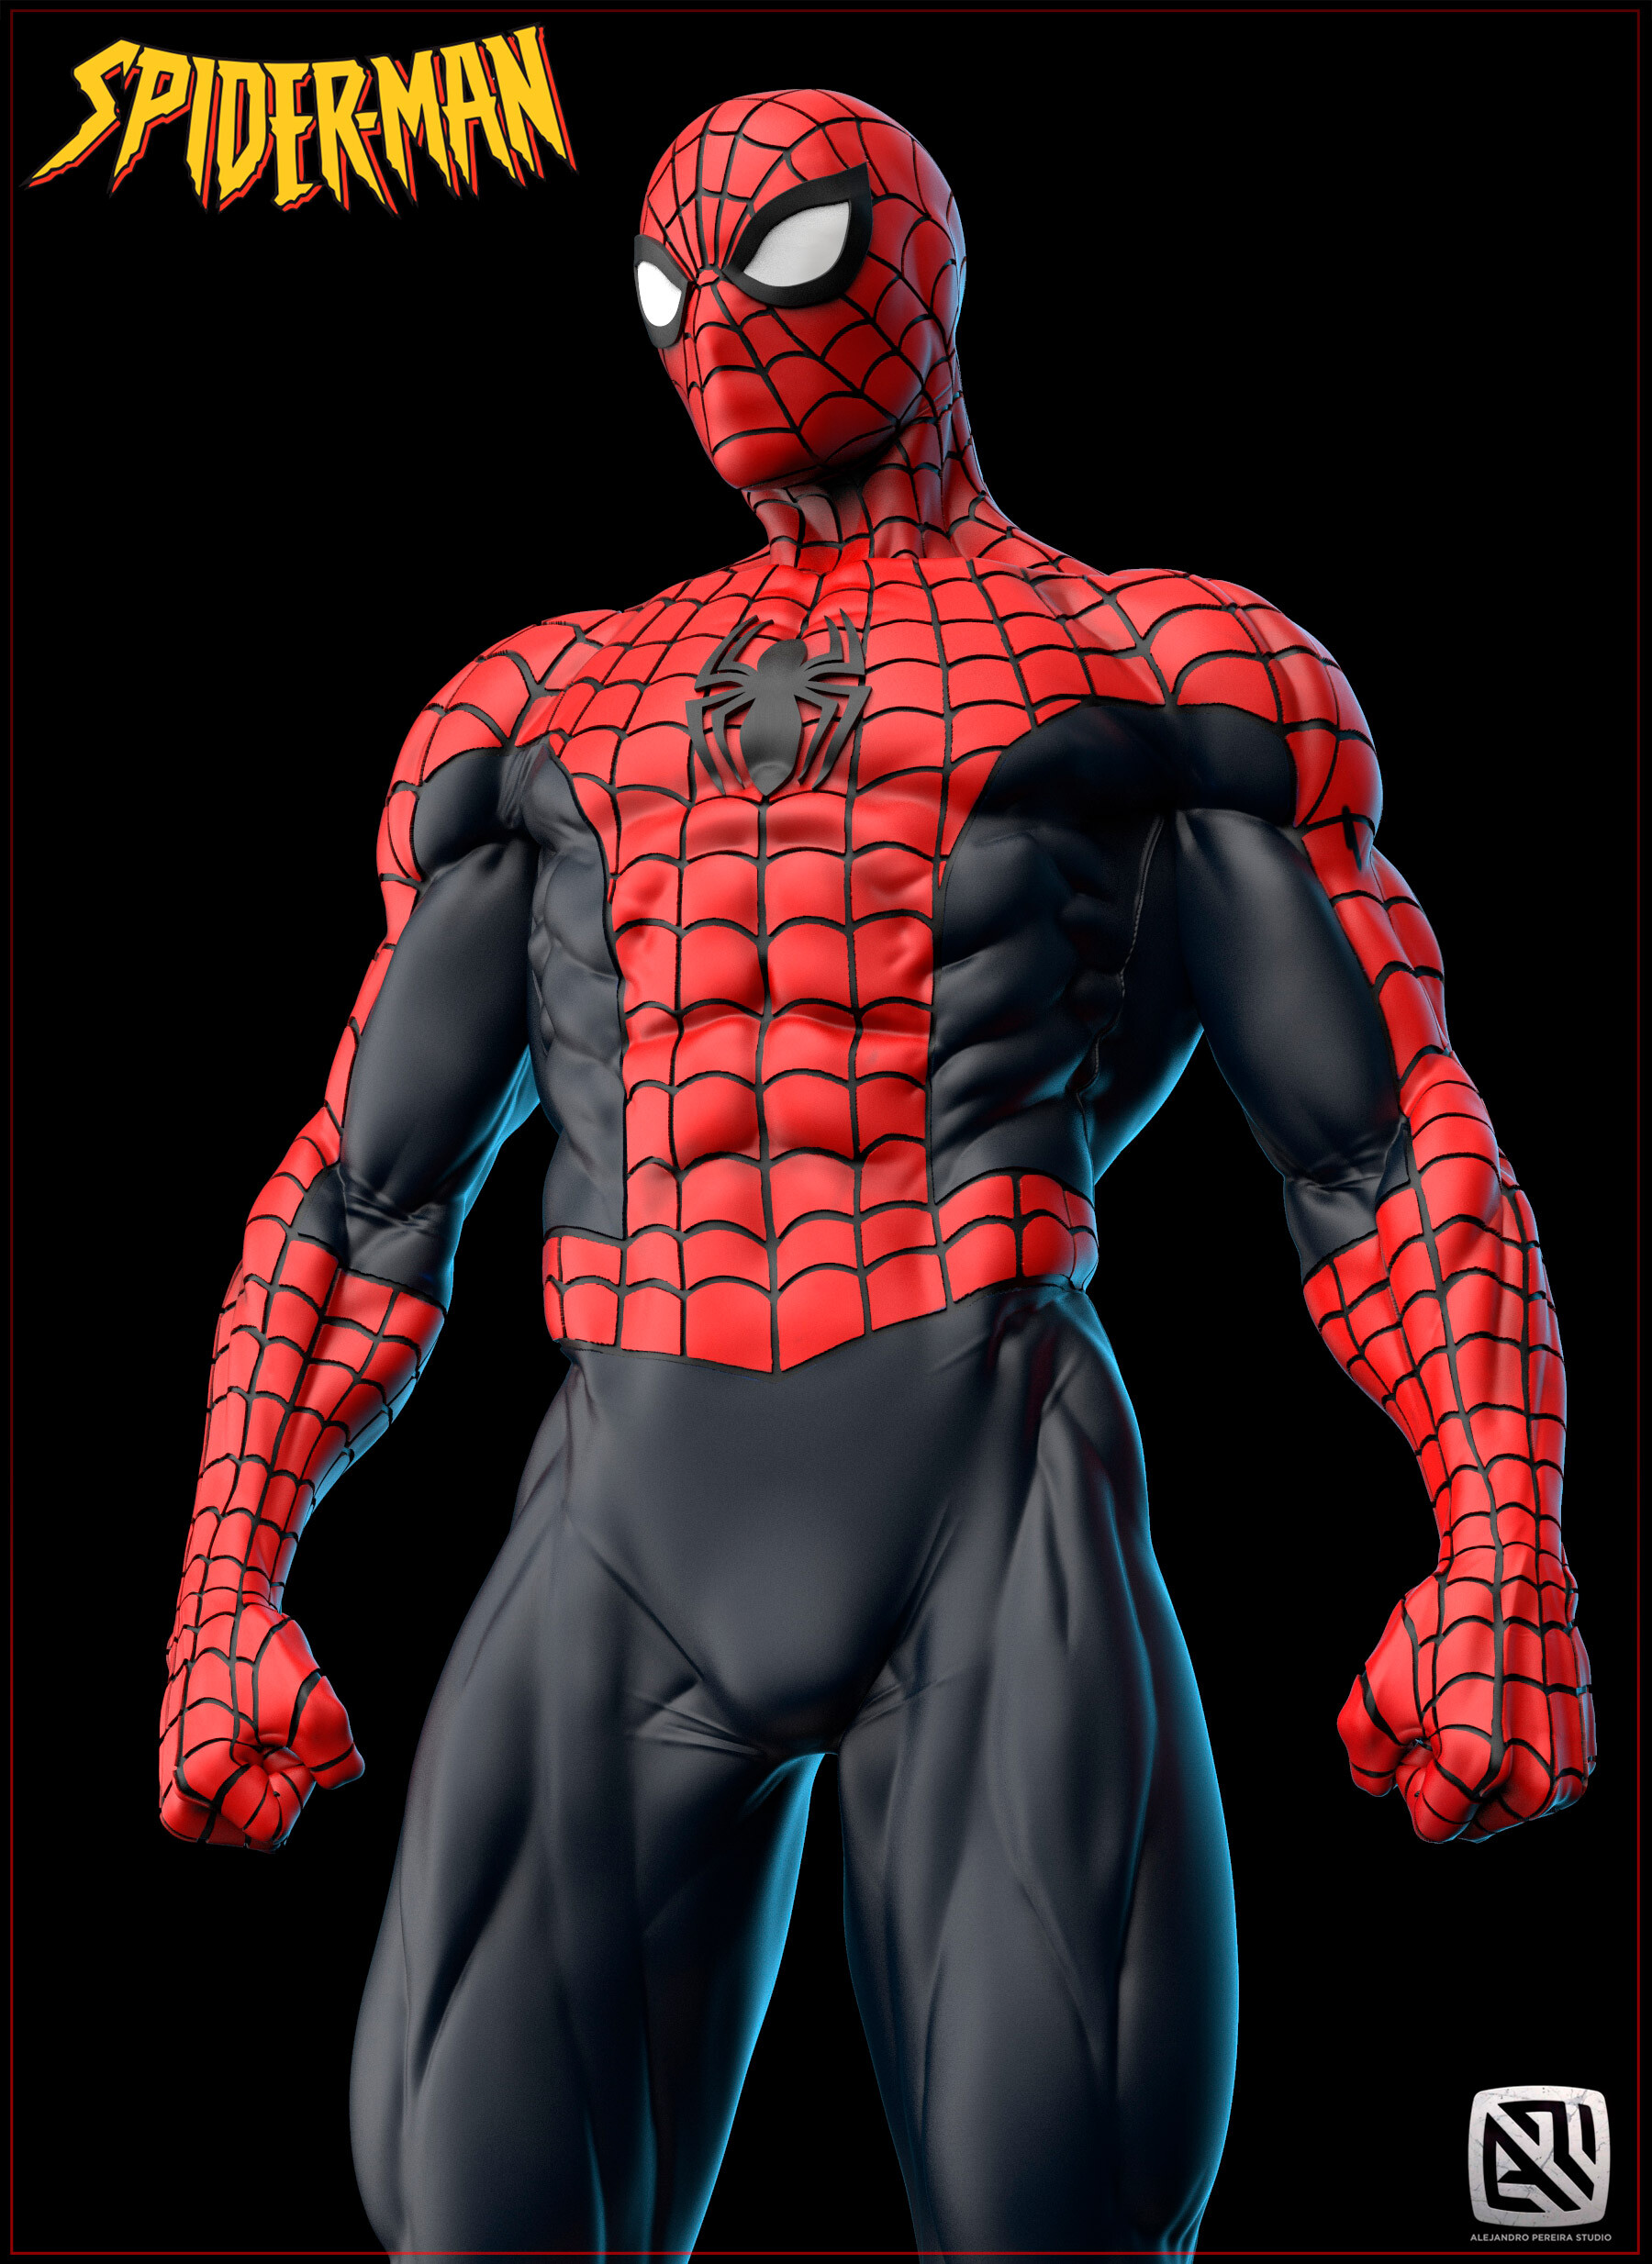 Alejandro pereira spidey render color 013